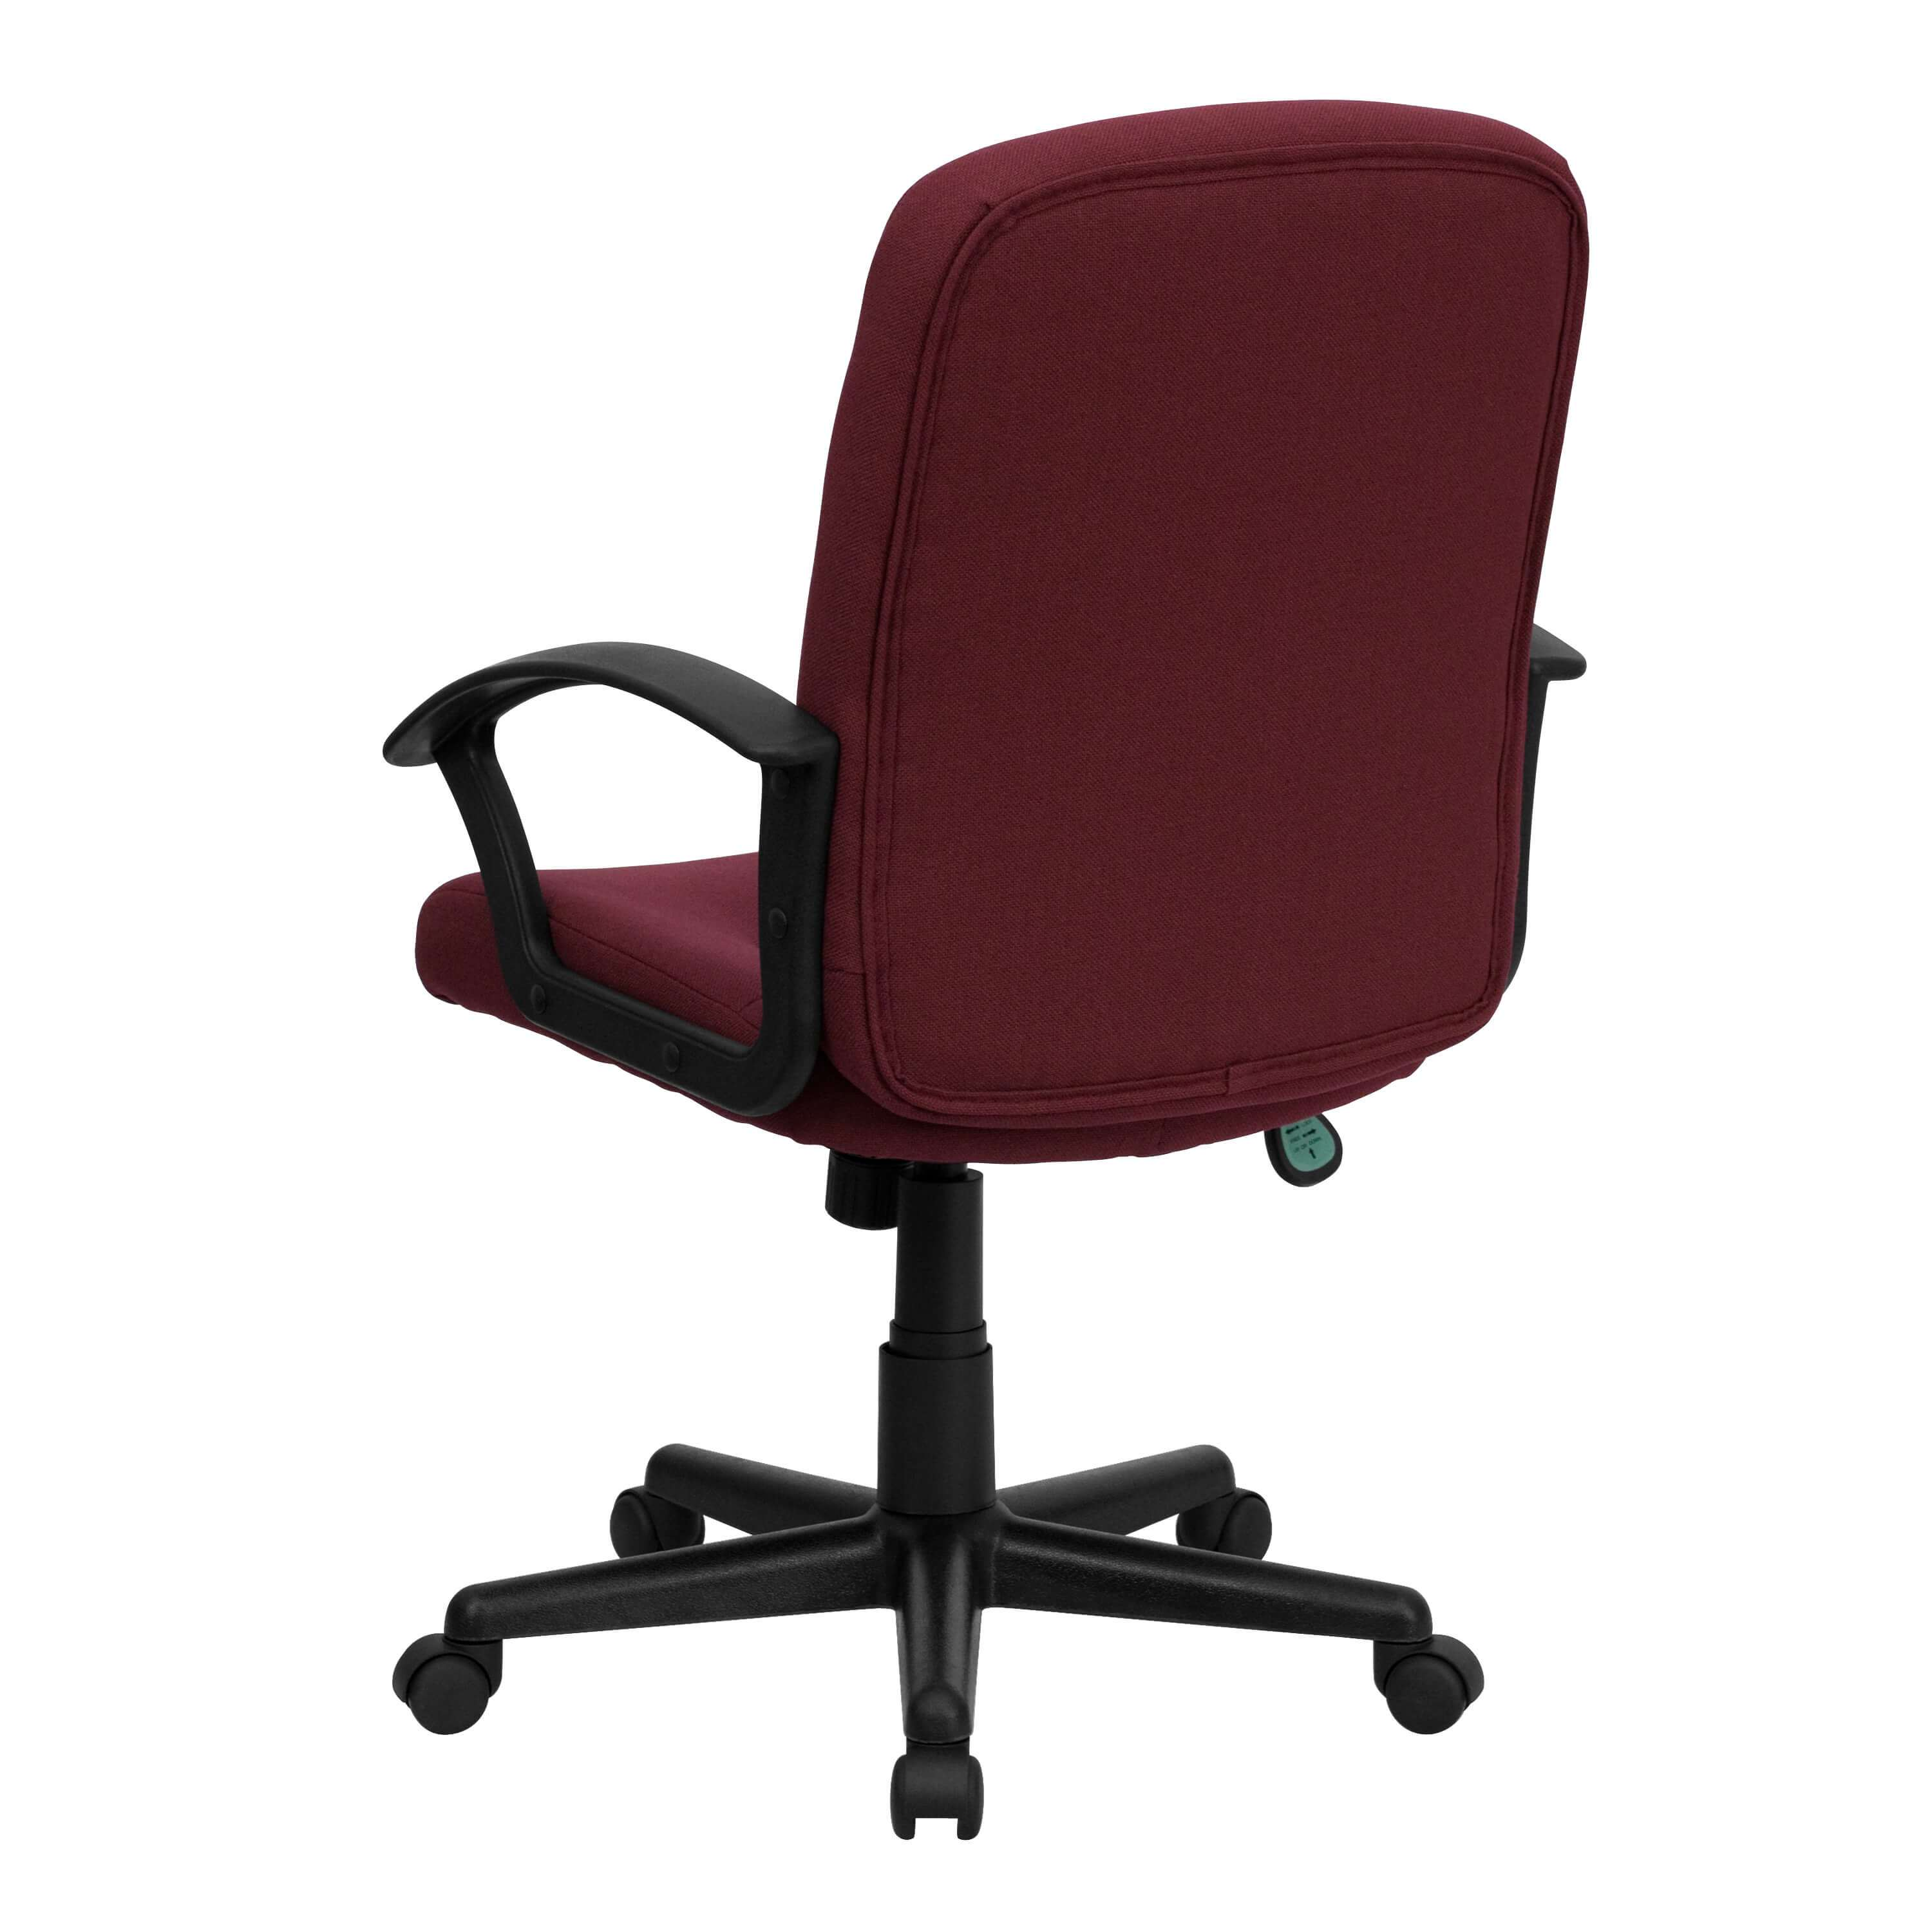 Upholstered desk chair rear view